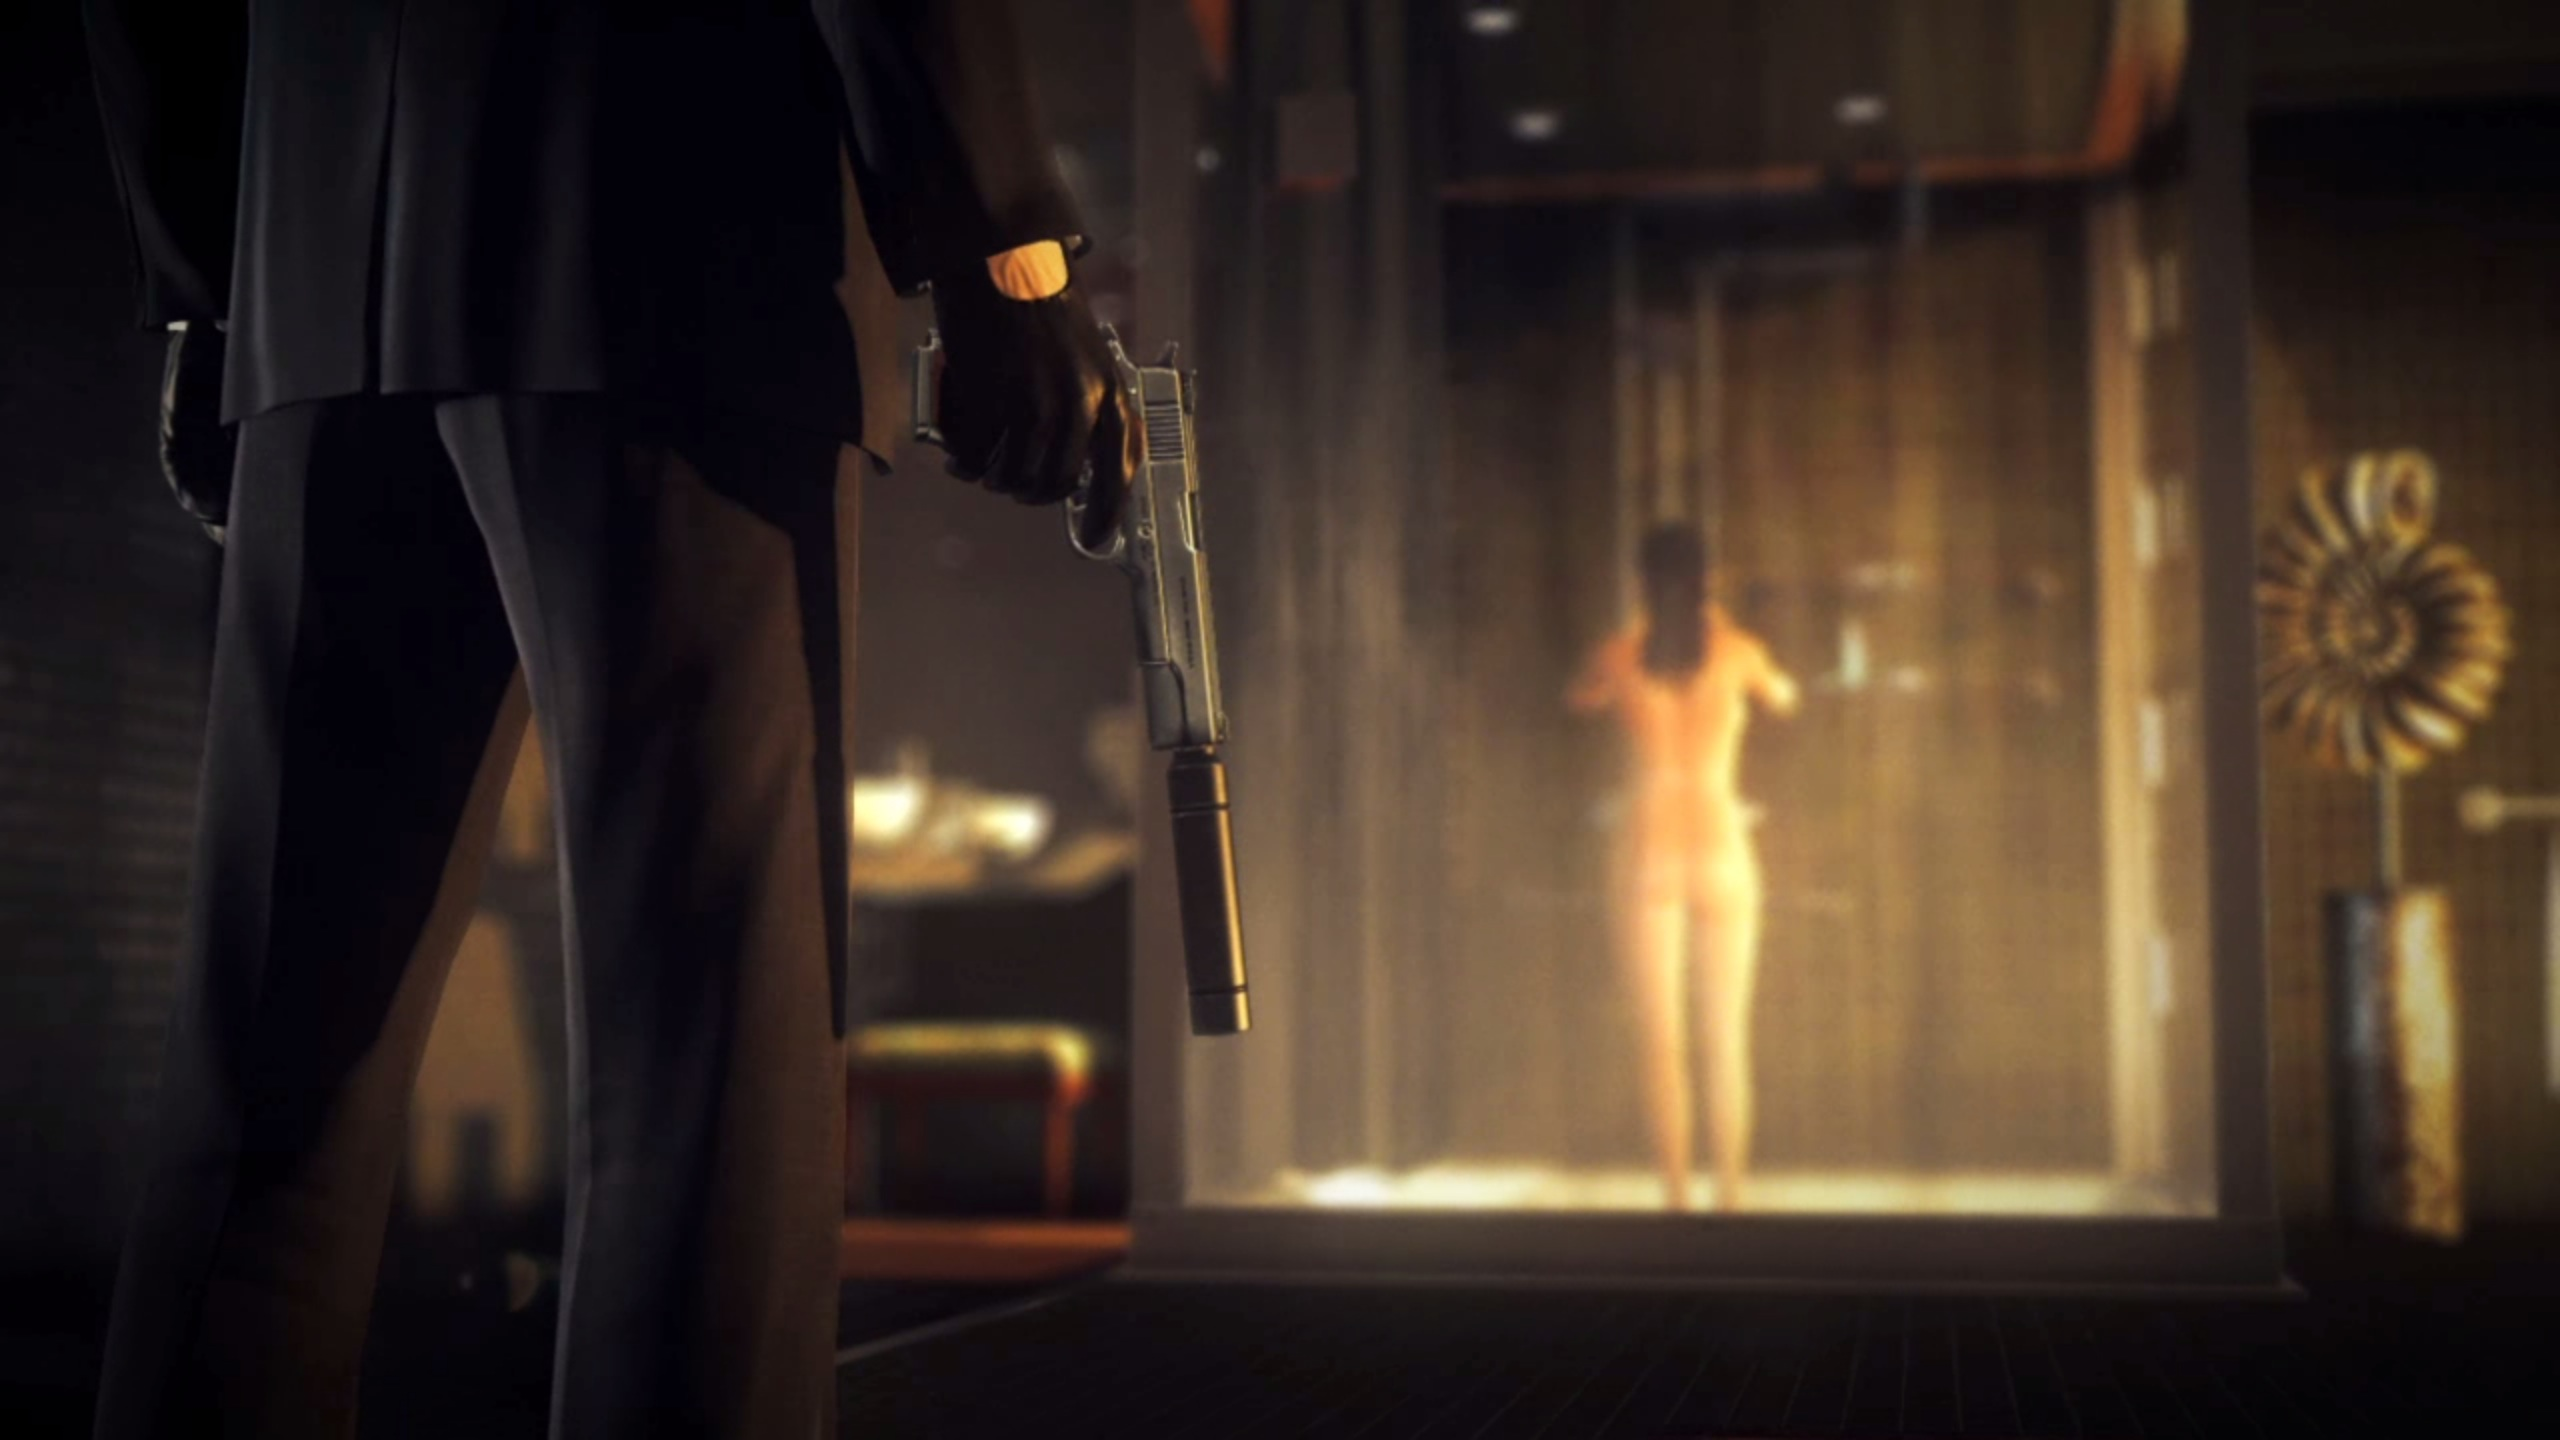 47 holding a silenced pistol in front of a woman in the shower